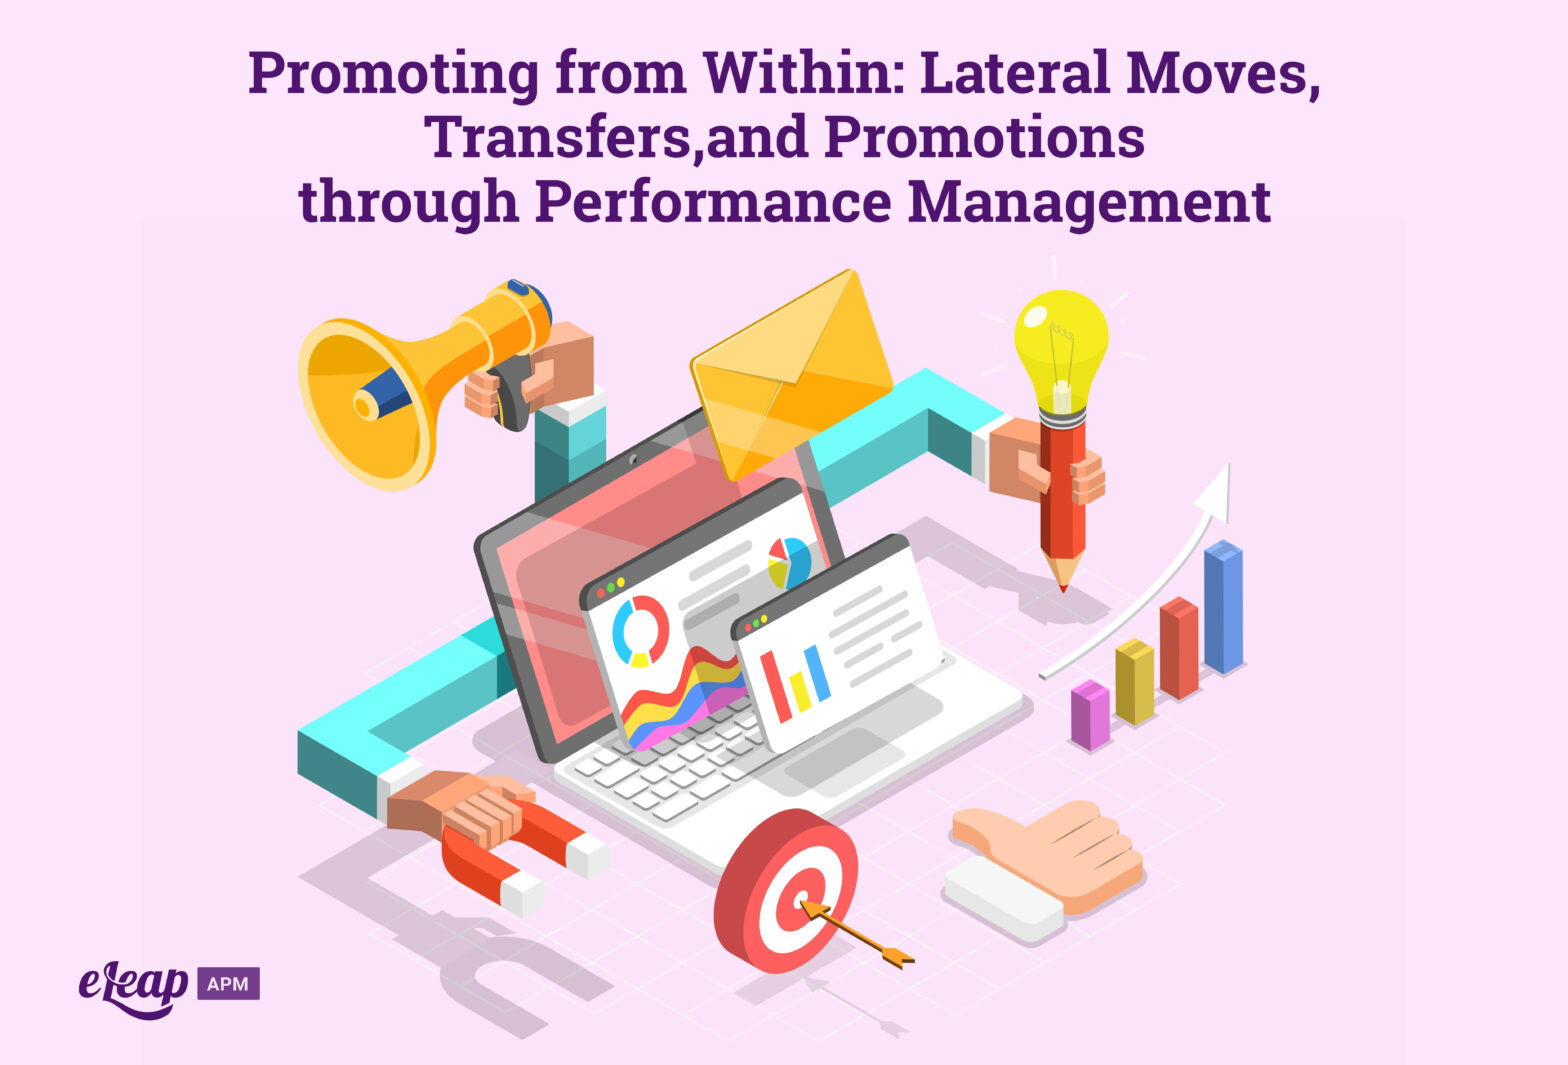 Promoting from Within: Lateral Moves, Transfers, and Promotions through Performance Management